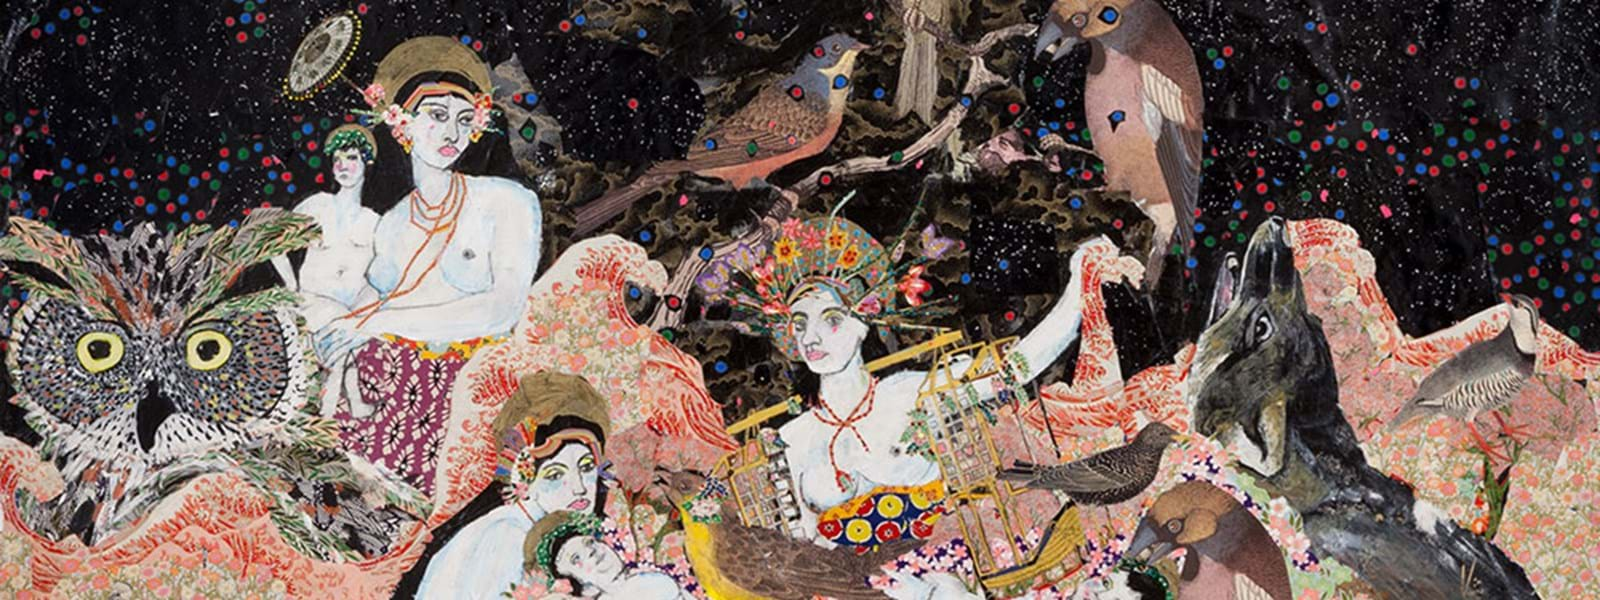 Maria Berrio | Nativity, 2014 | Collage with Japanese paper, acrylic and watercolor paint, pencil, and rhinestones